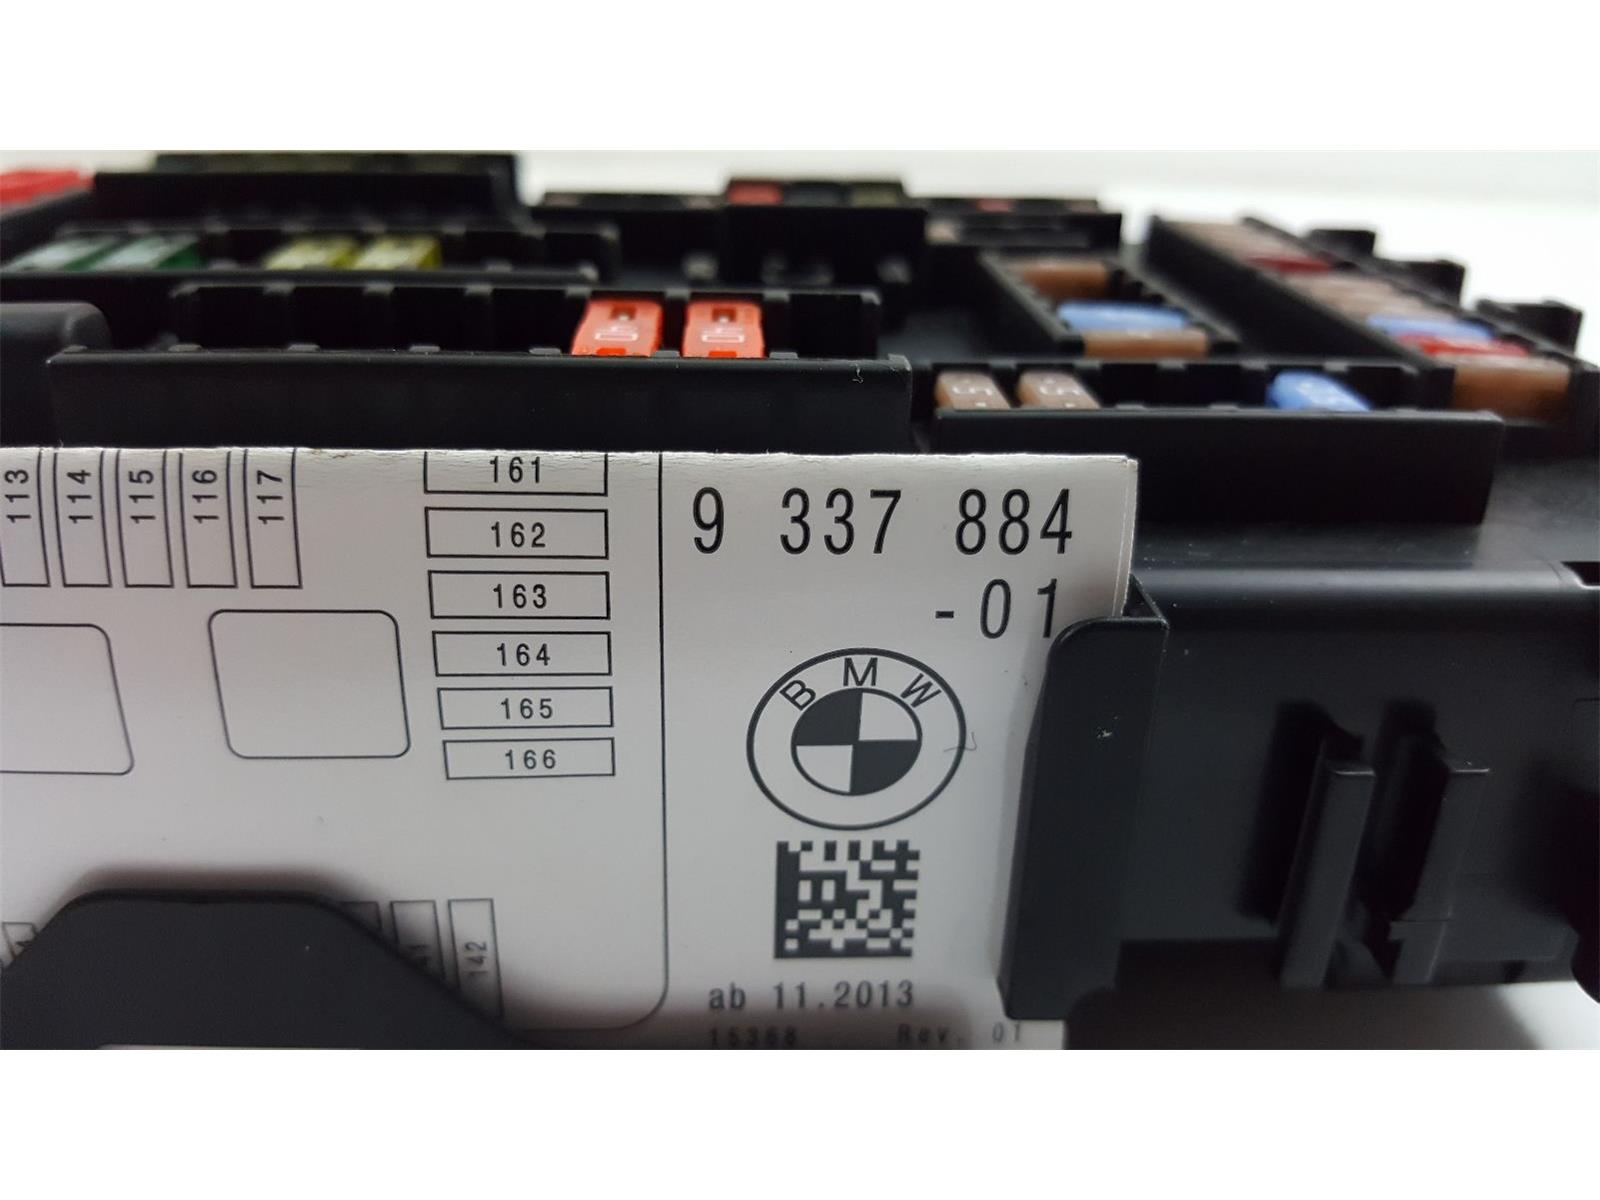 Bmw 3 Series 2012 To 2015 Fuse Box Diesel Manual For Sale From 1 2014 F31 320d 9337884 01